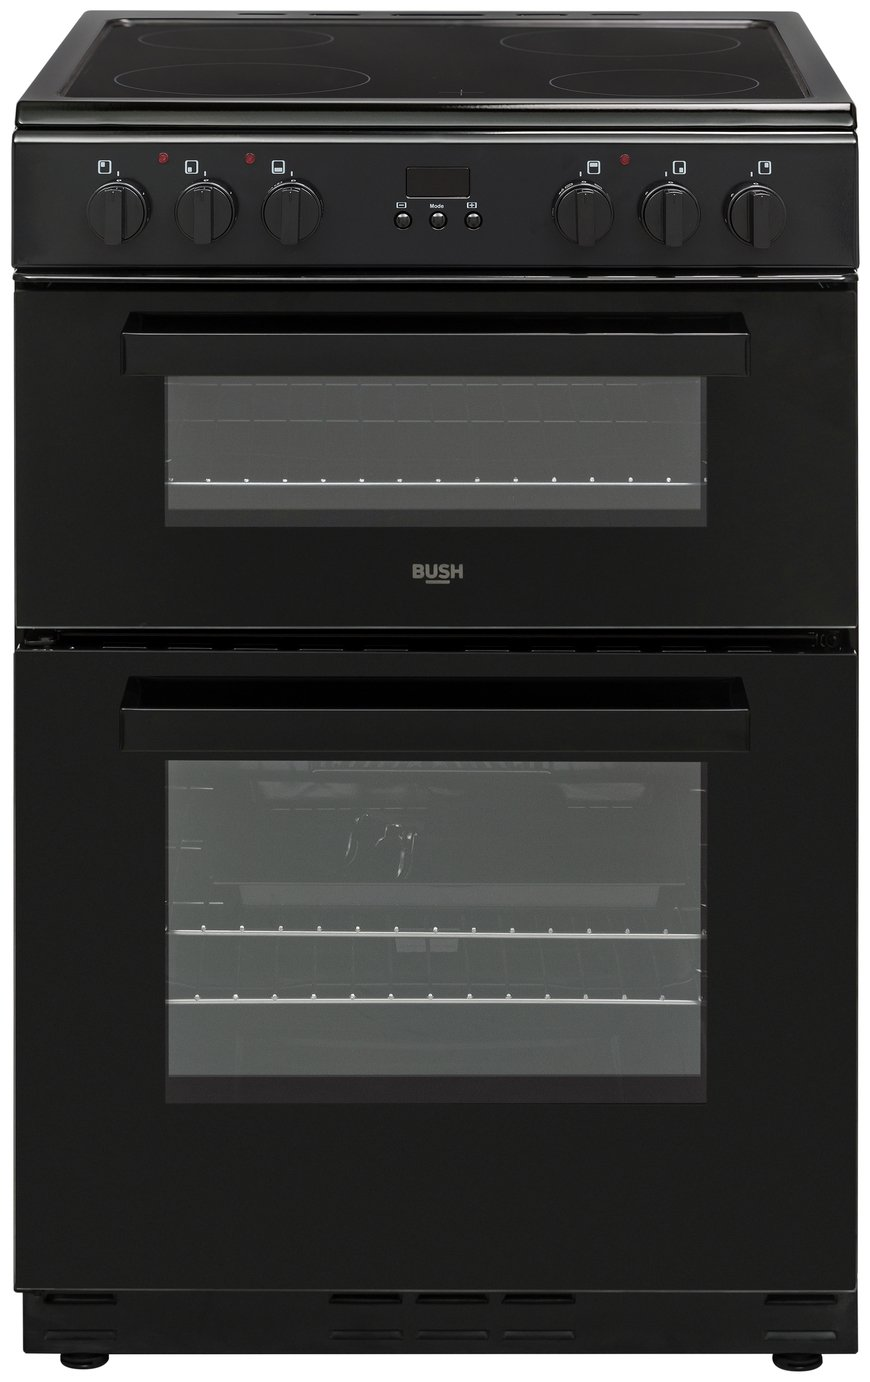 Bush BDBL60ELB 60cm Double Oven Electric Cooker - Black Best Price, Cheapest Prices